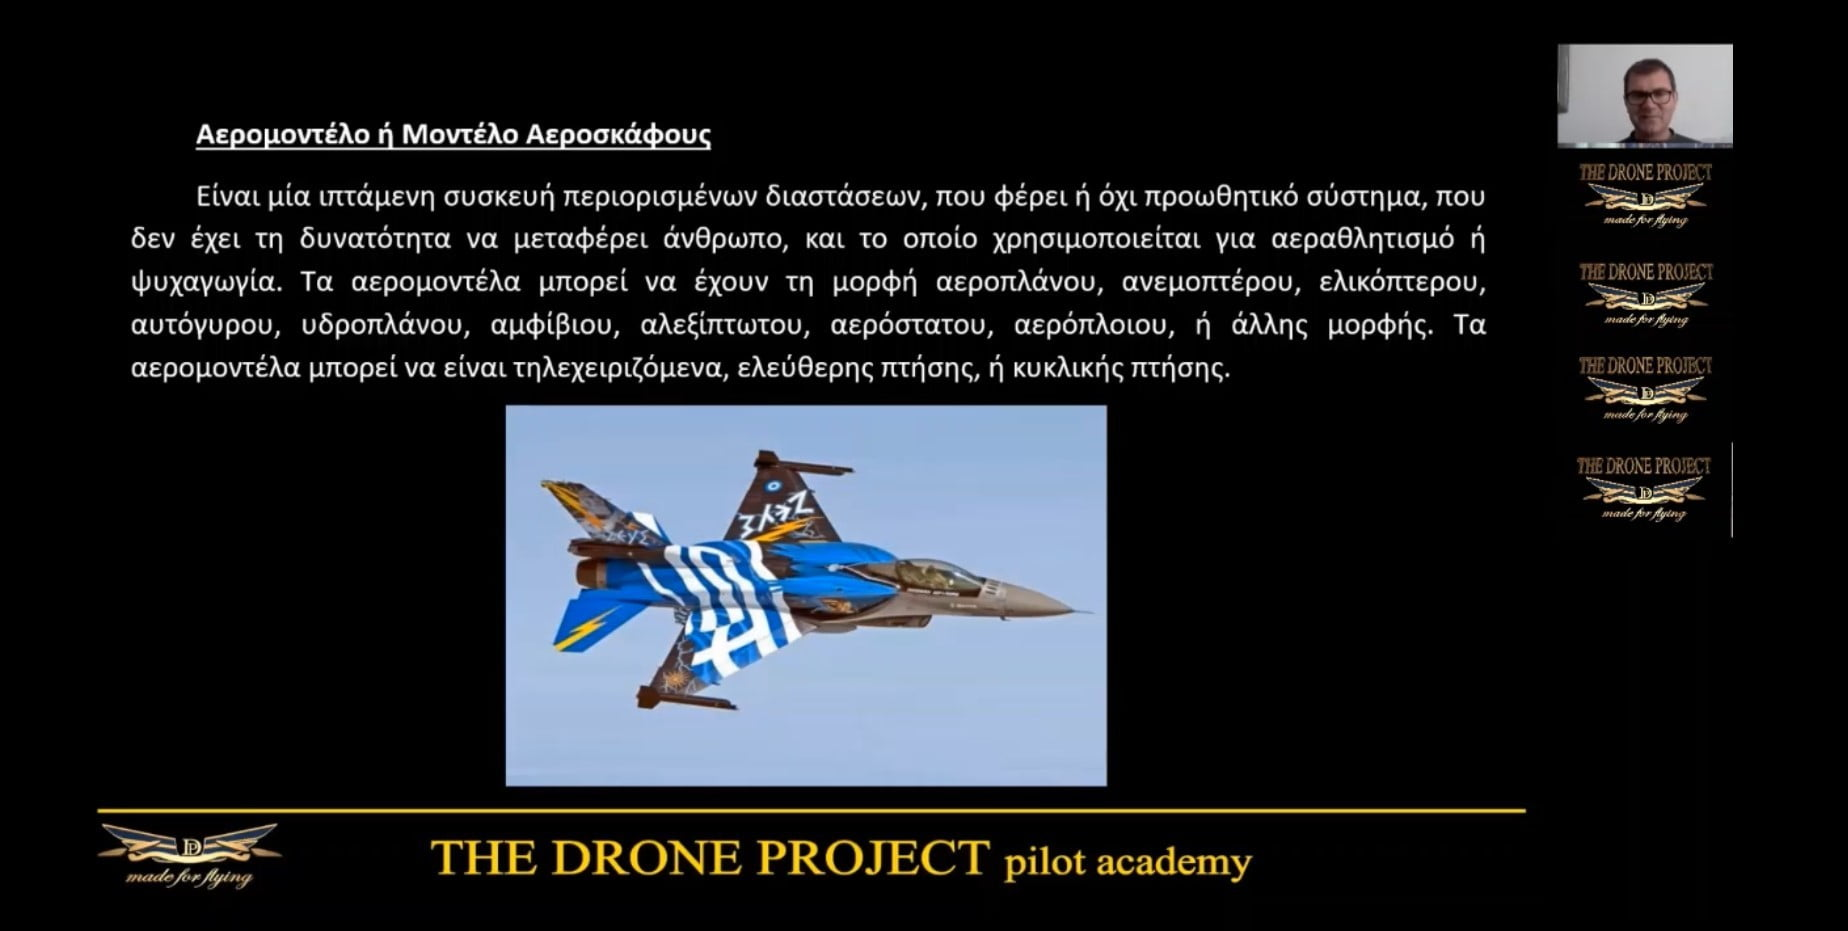 The drone project